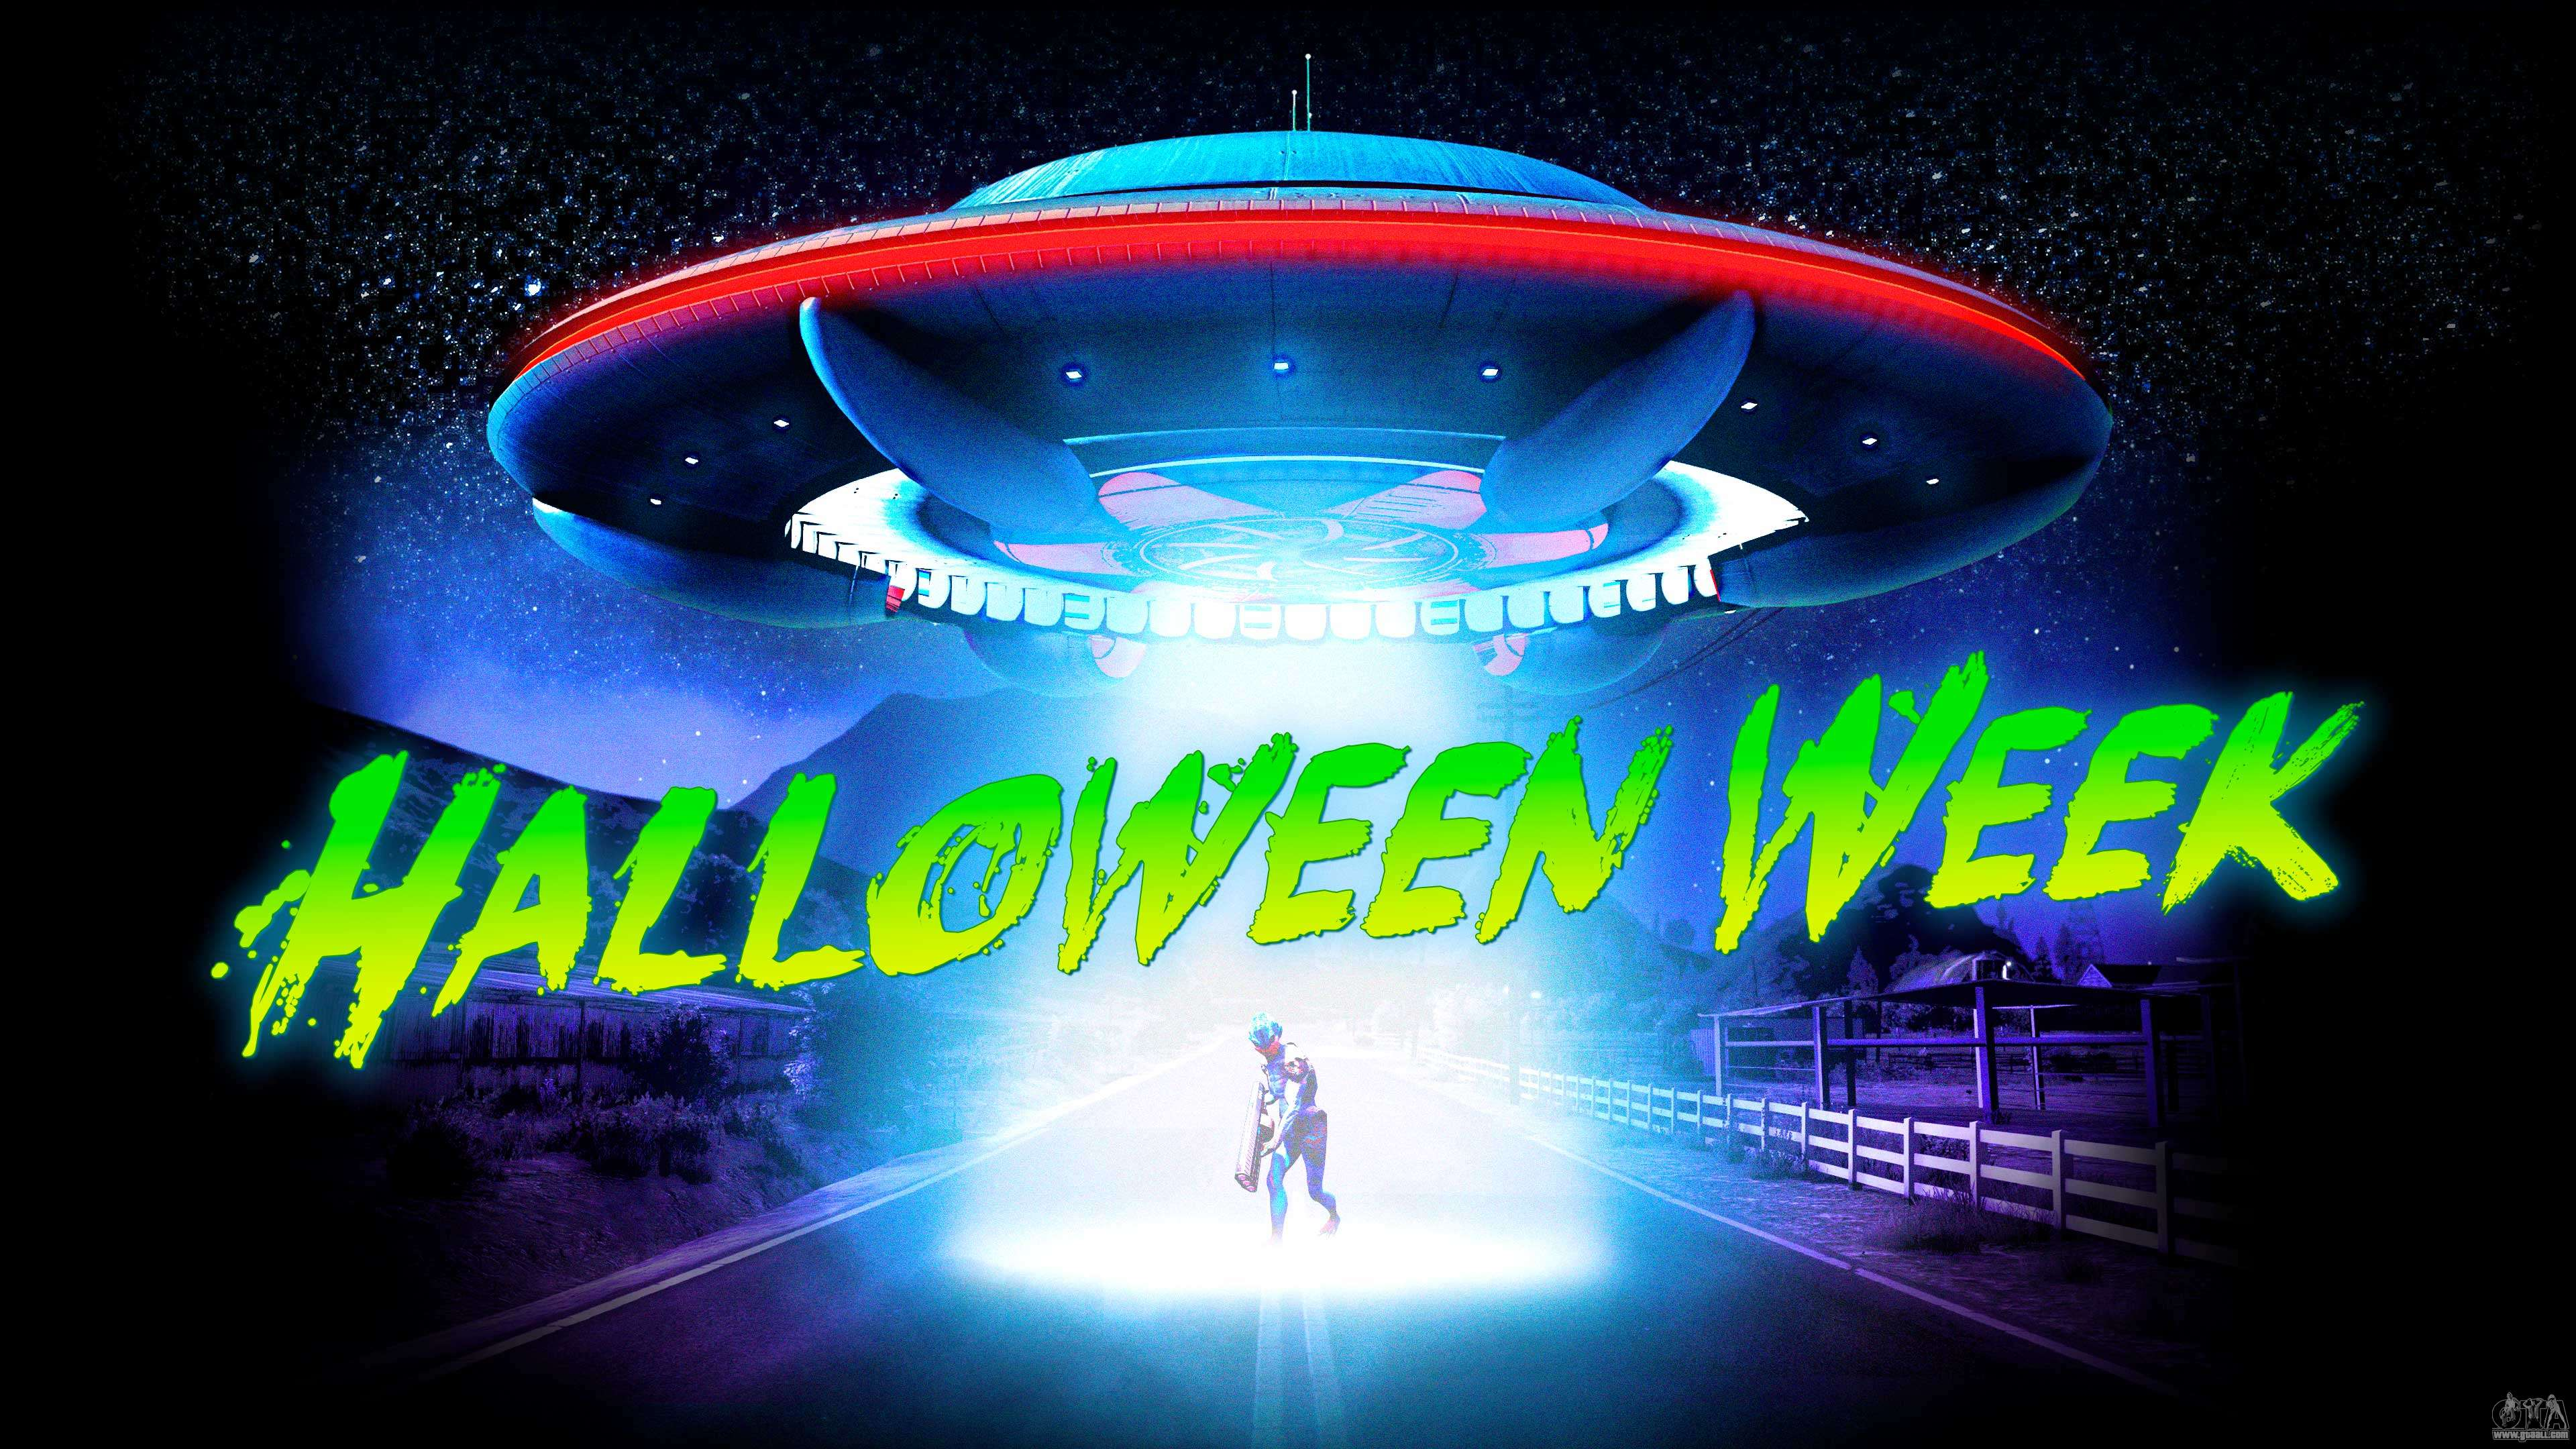 Halloween Week at GTA Online